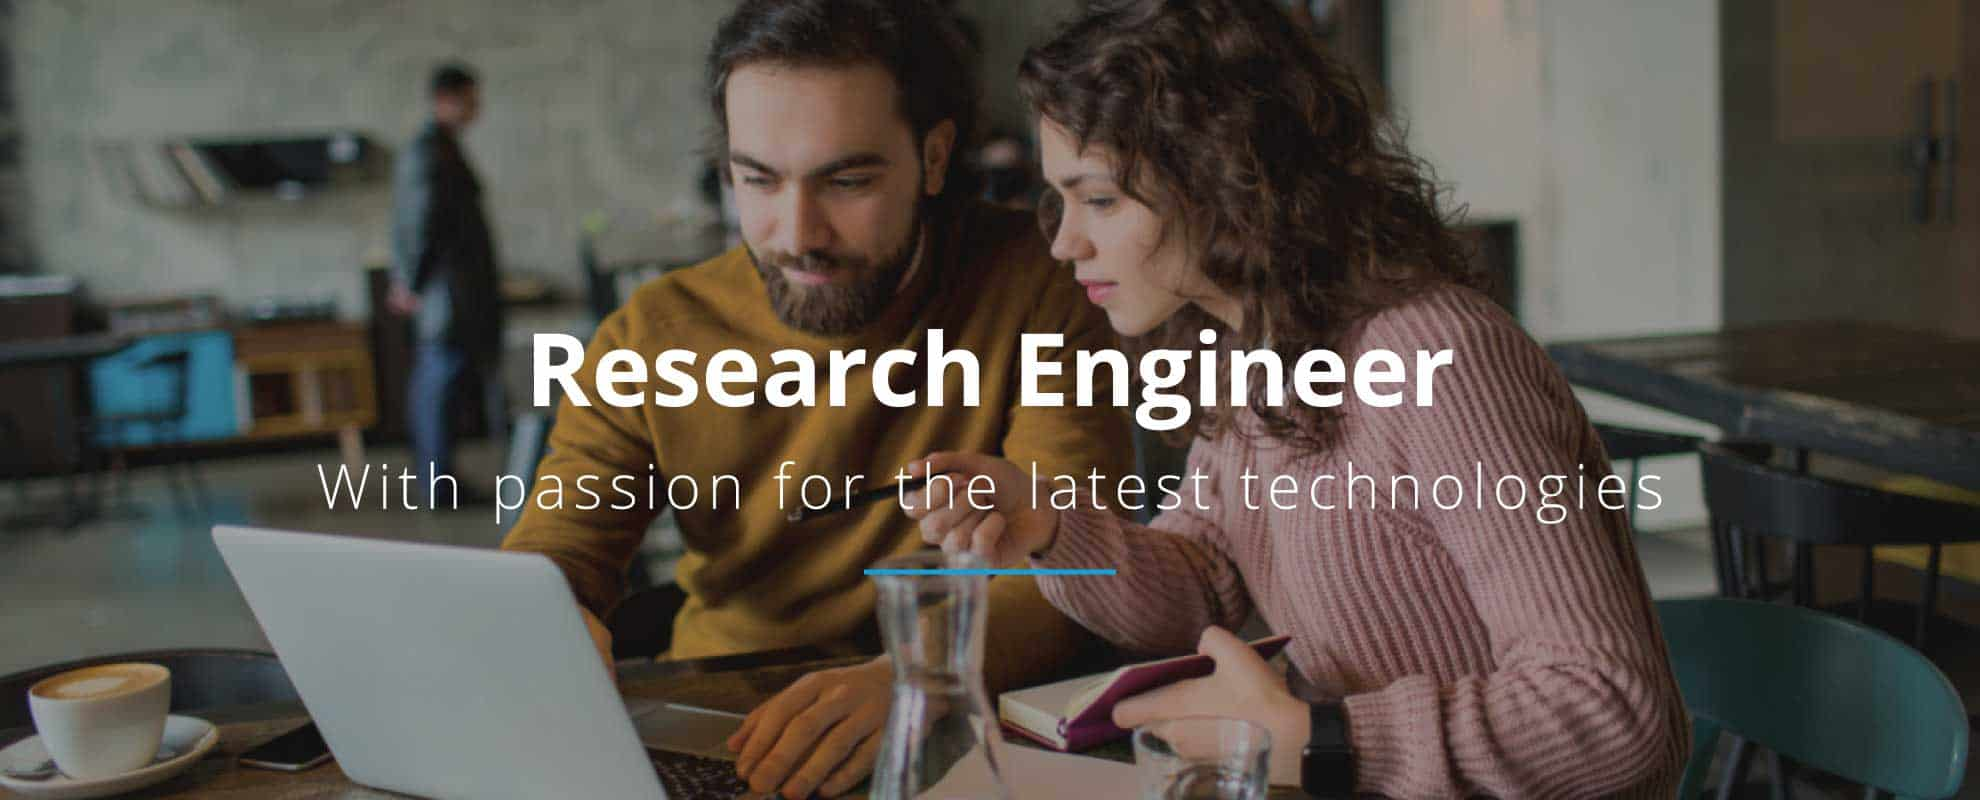 Research Engineer Connective